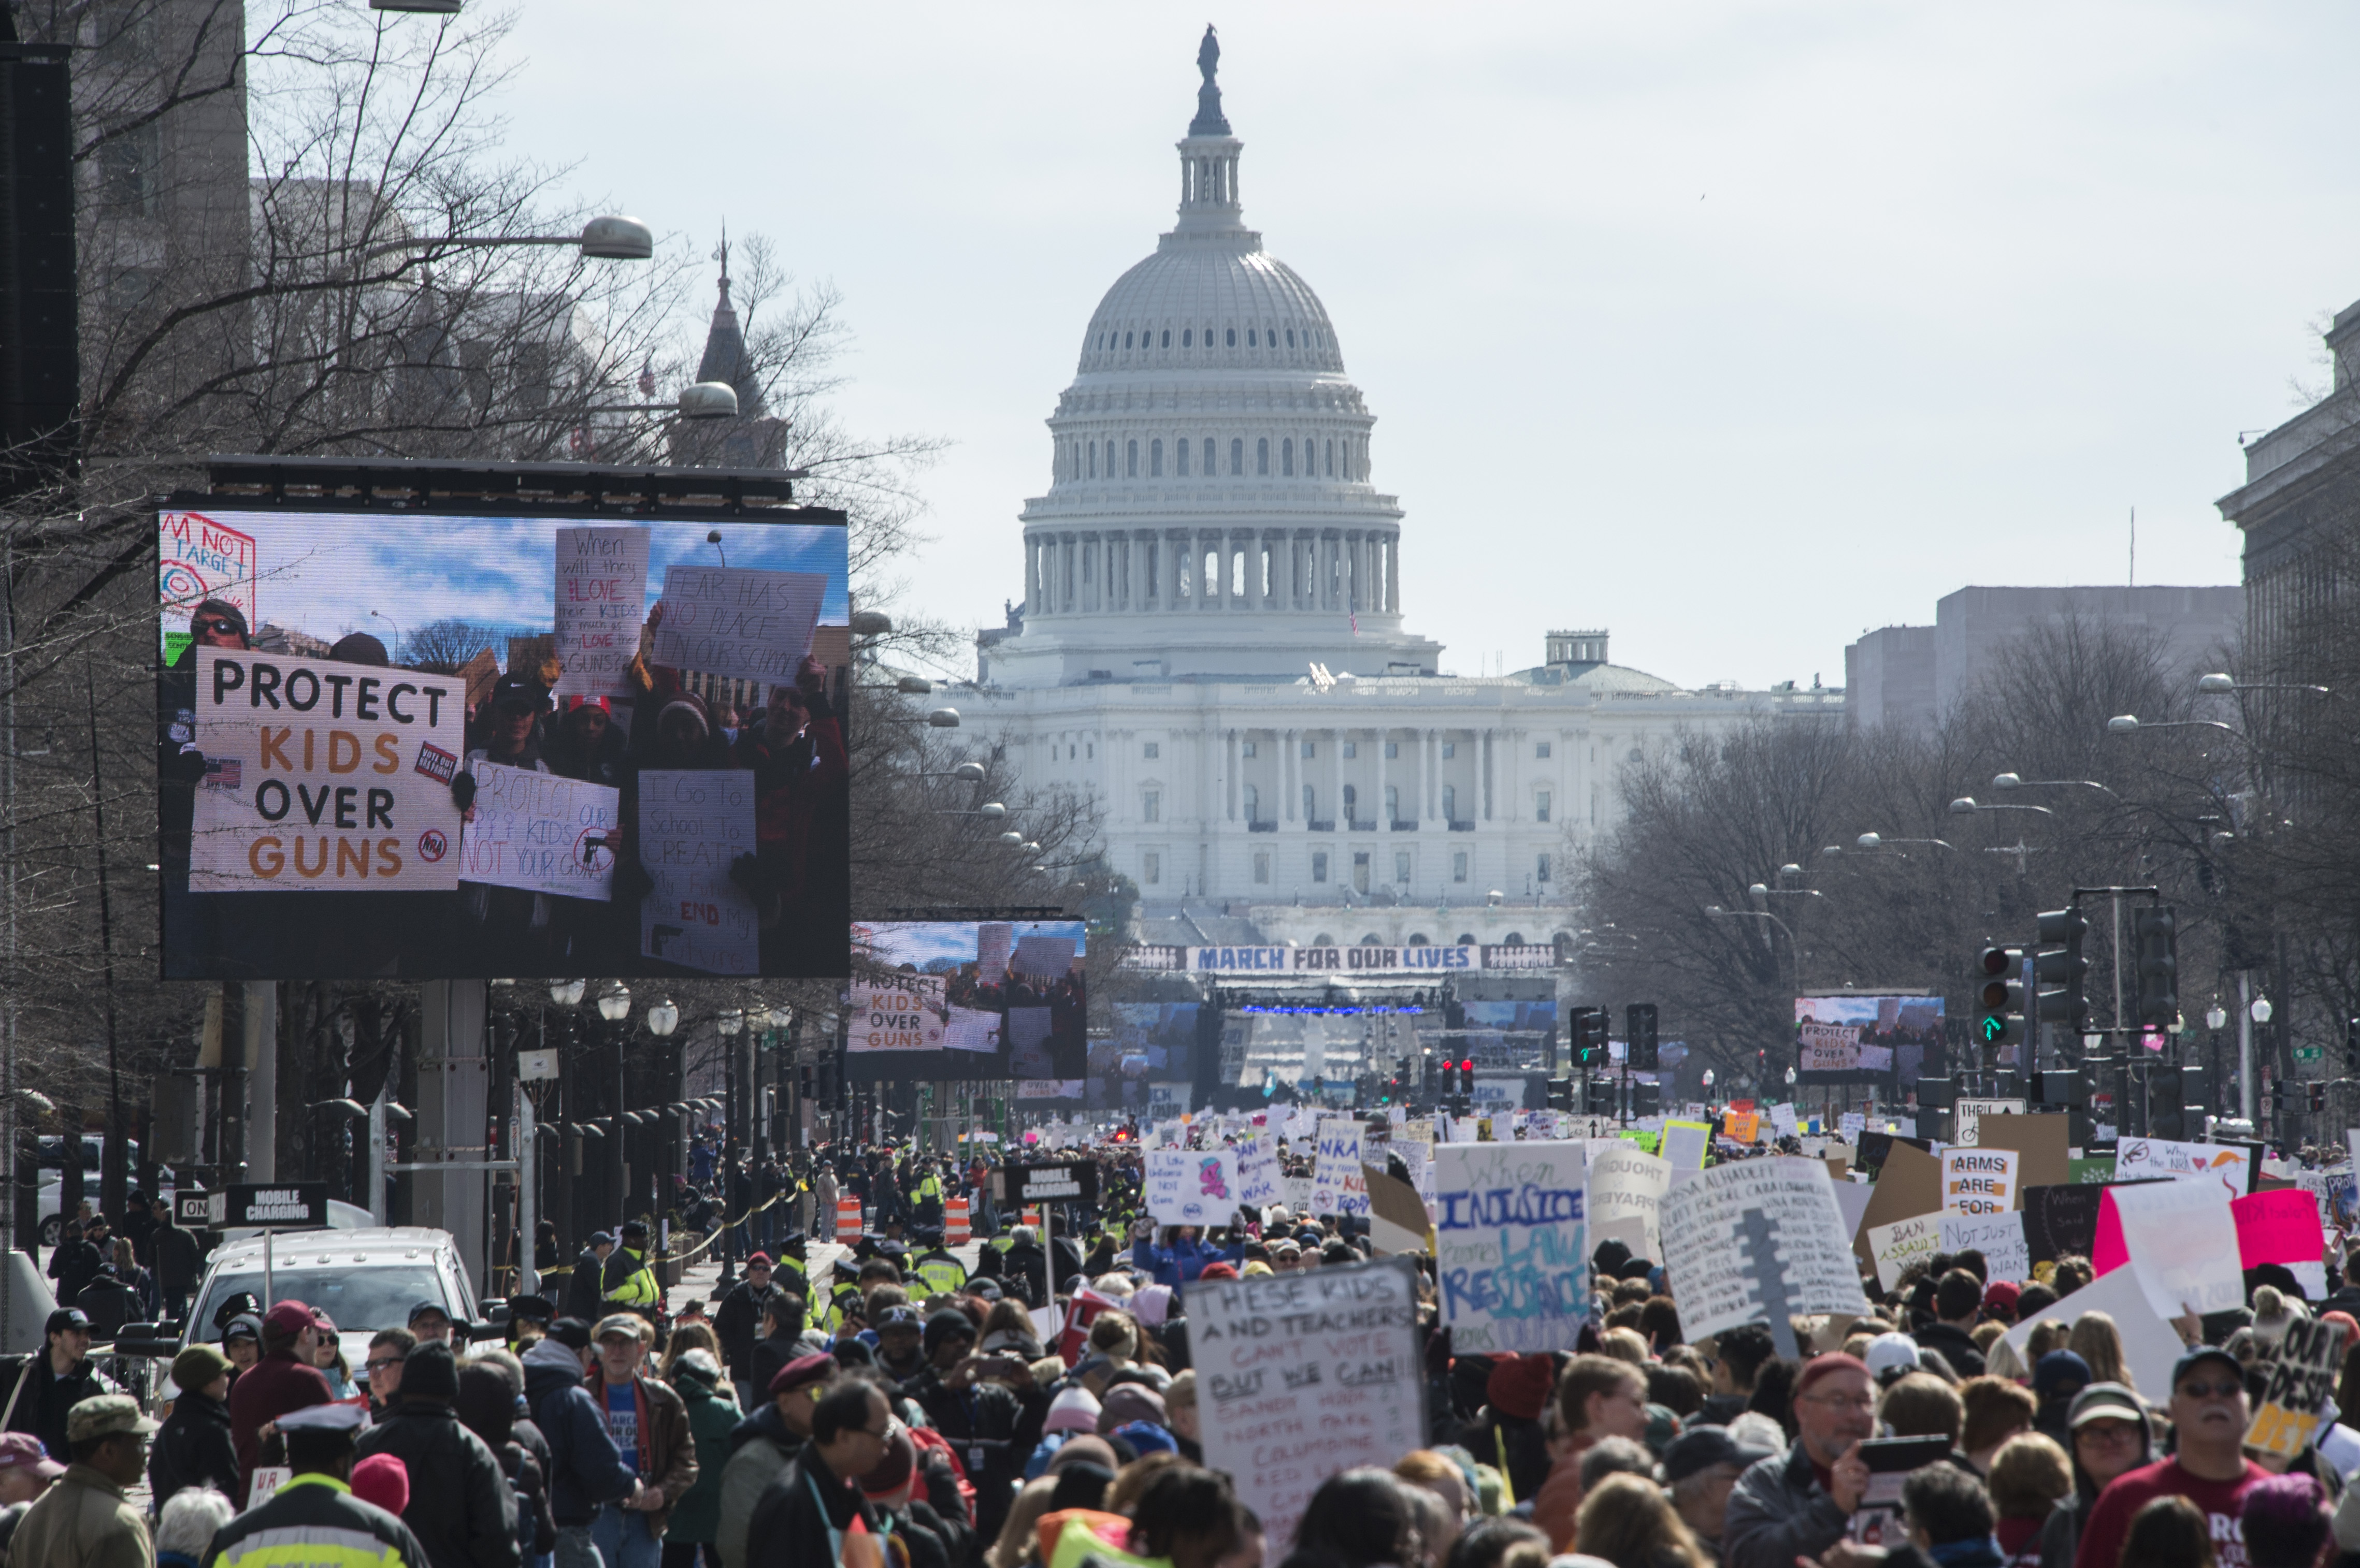 <div class='meta'><div class='origin-logo' data-origin='none'></div><span class='caption-text' data-credit='Andrew Caballero-Reynolds/AFP/Getty Images'>Participants take part in the March for Our Lives Rally in Washington, DC on March 24, 2018.</span></div>